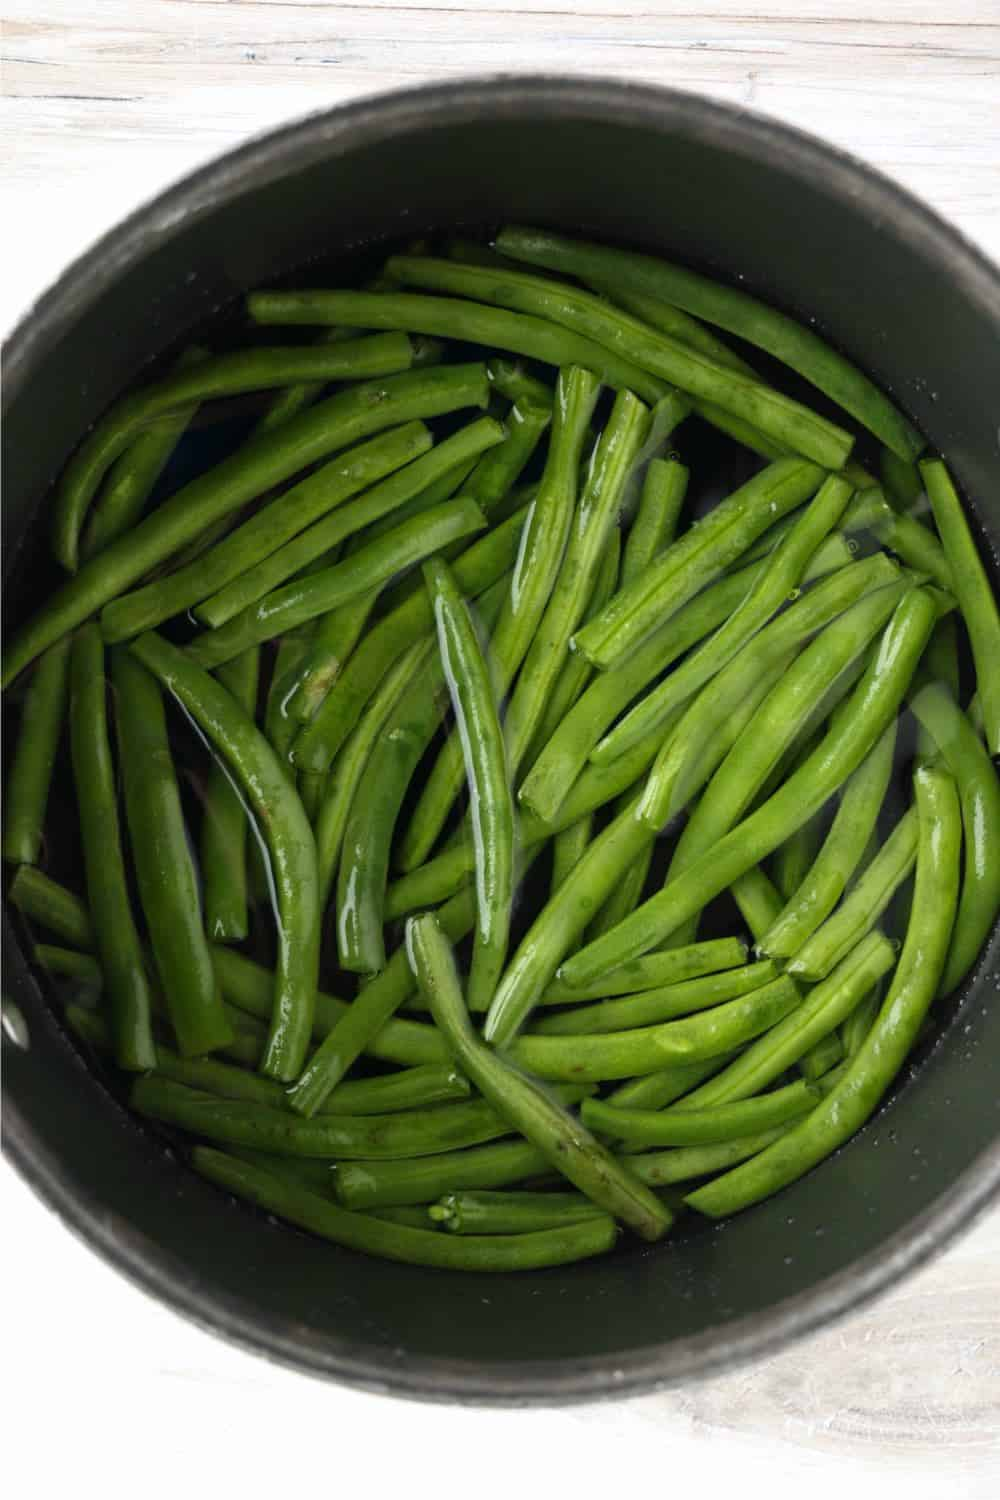 Green beans in water, cooking in a pot on the stove